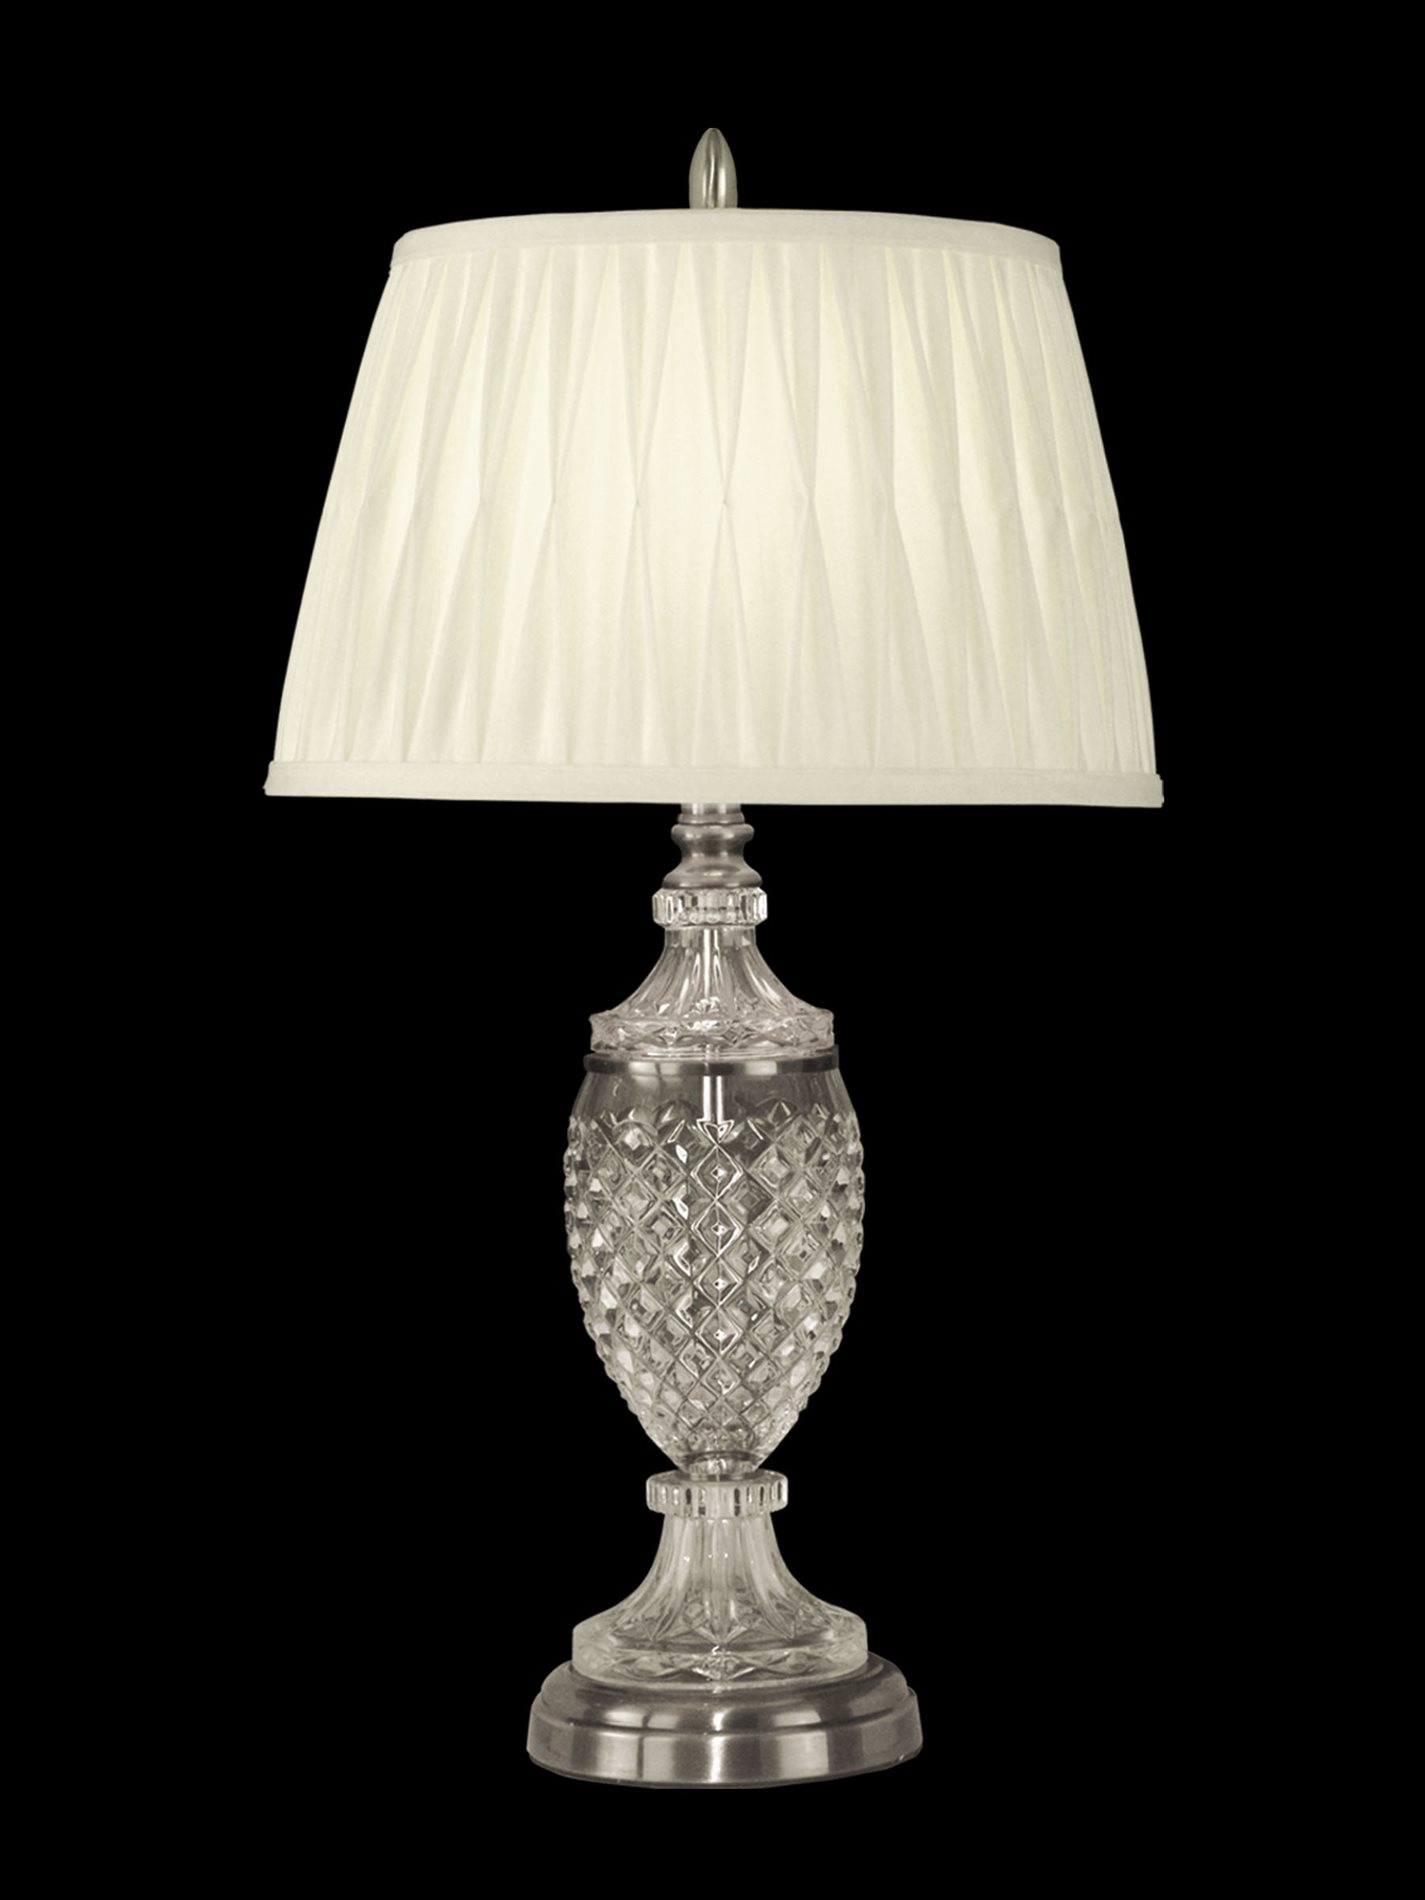 Dale Tiffany Gt10364 Crystal Traditional Table Lamp Dt Gt10364